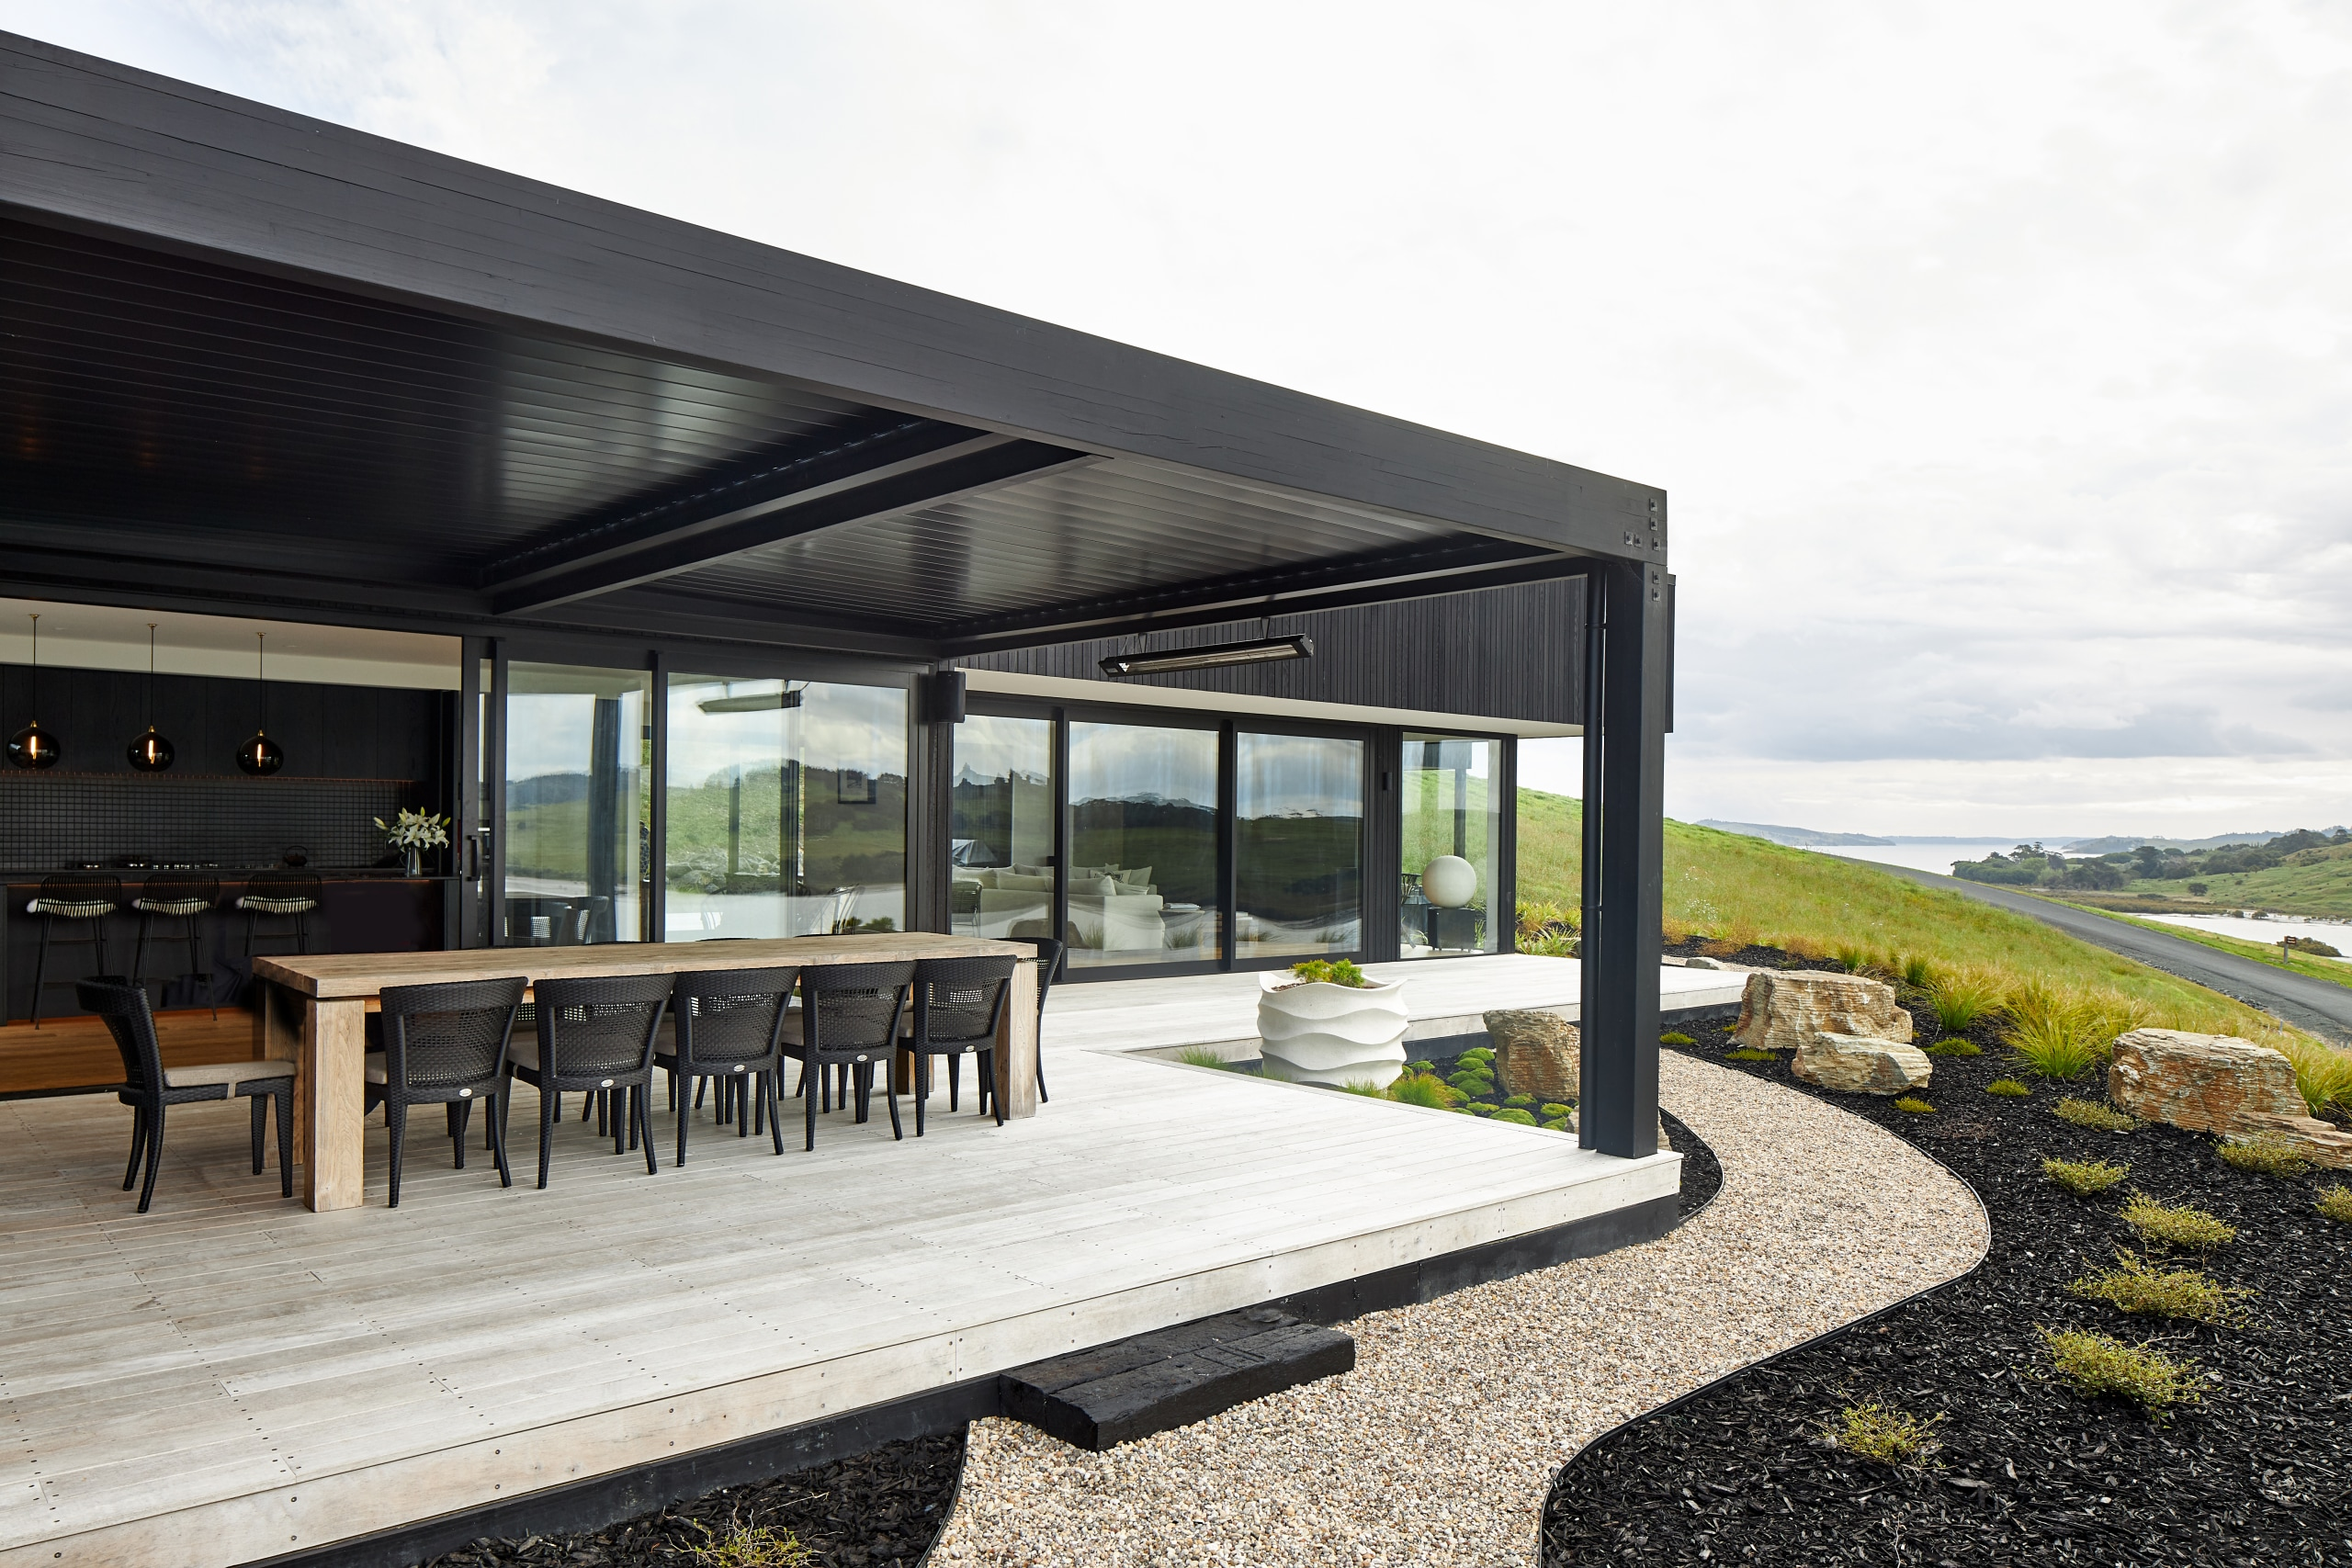 This grand holiday home sits comfortably on the